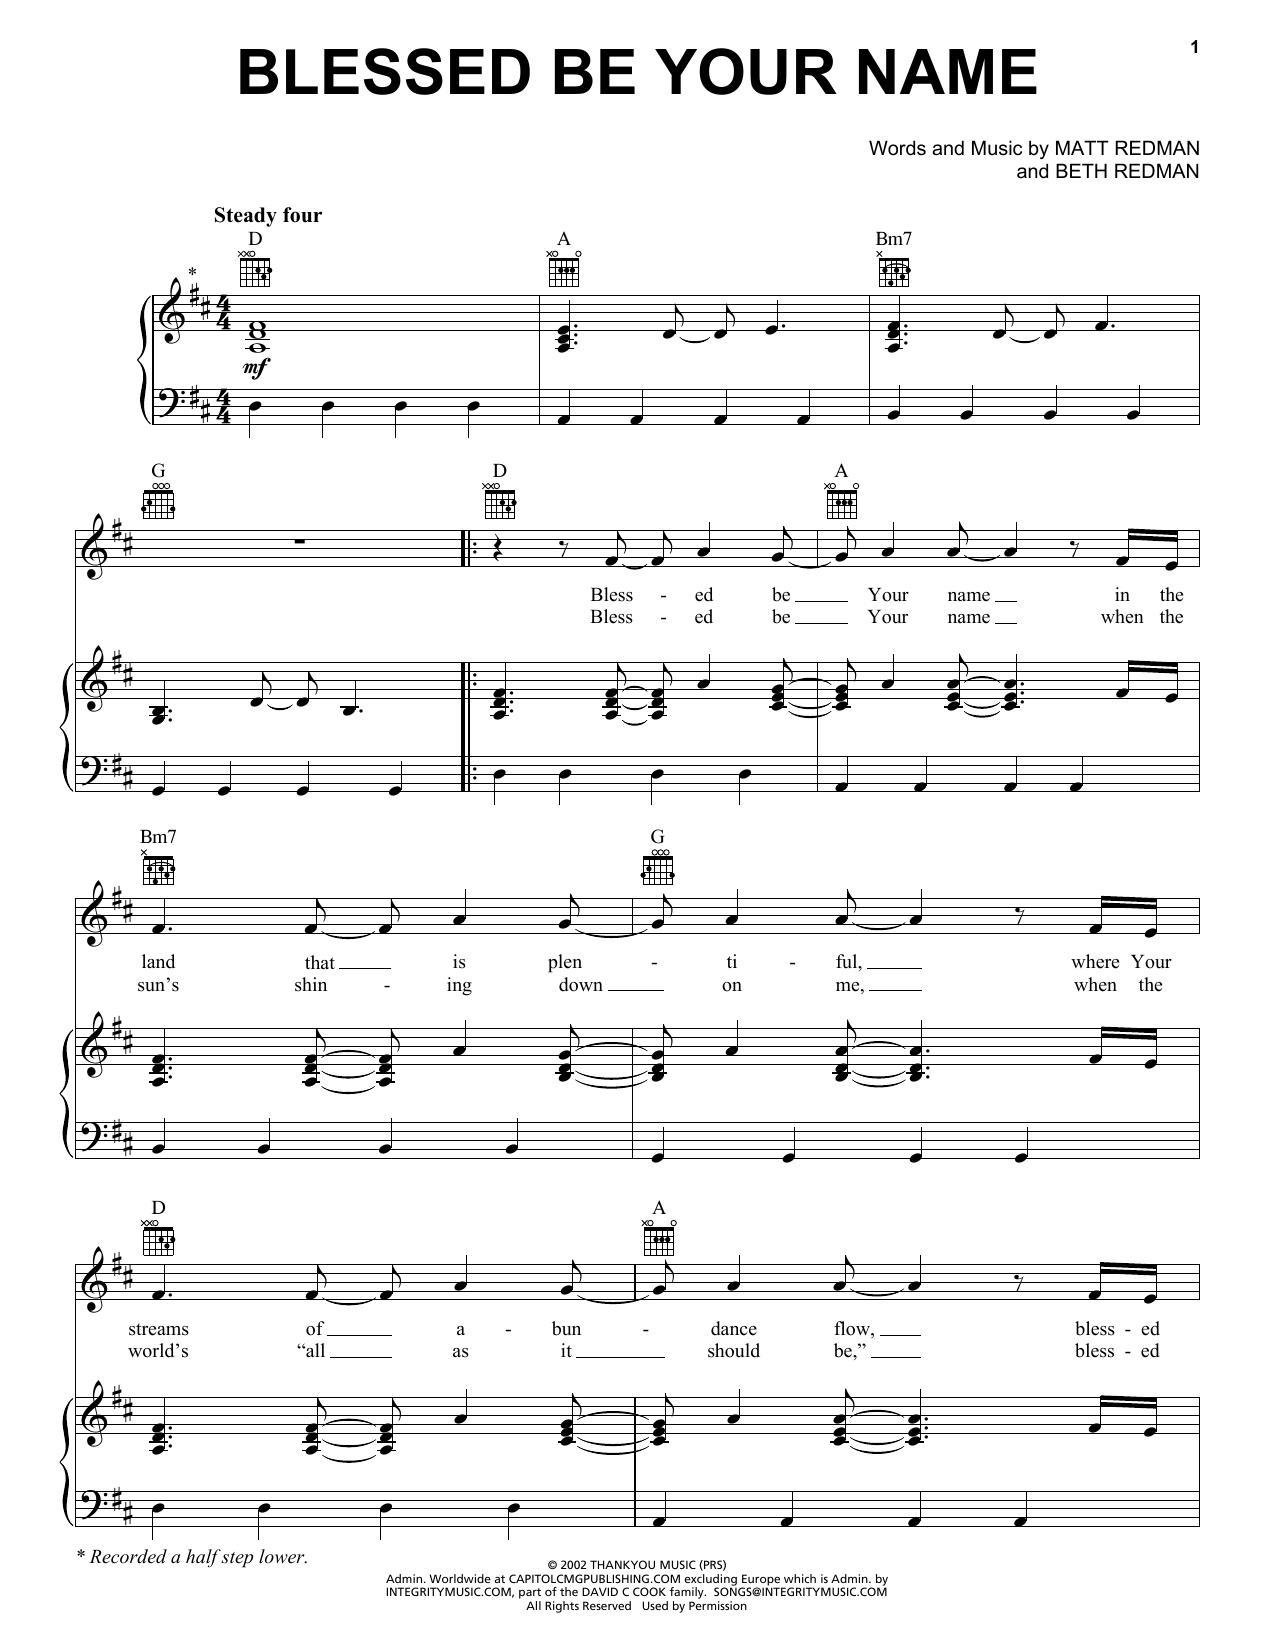 Blessed Be Your Name Chords Tree63 Blessed Be Your Name Sheet Music Notes Chords